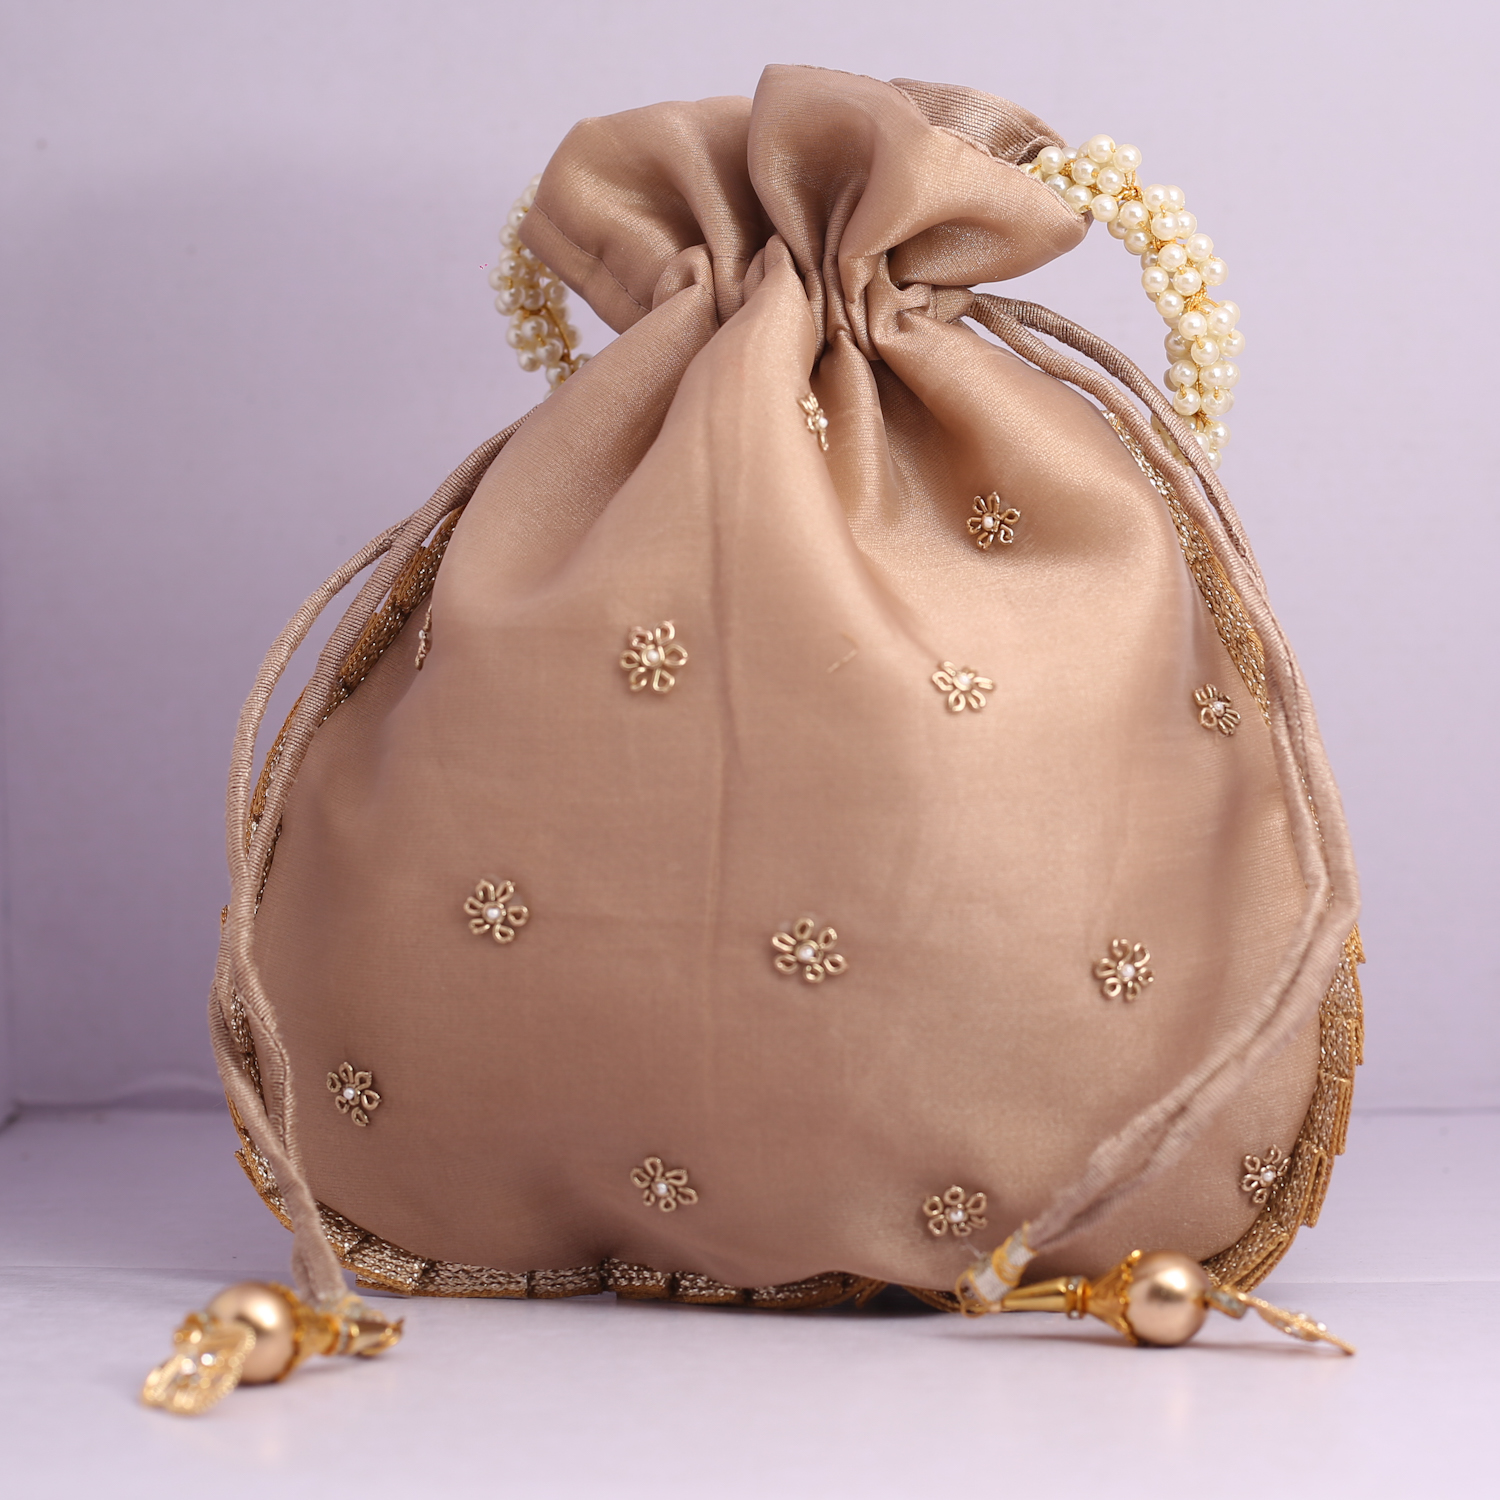 9.Wedding Hand Crafted Potli Bag With Beaded Chain For Women|| Evening Bags|| Embroidery Handbag